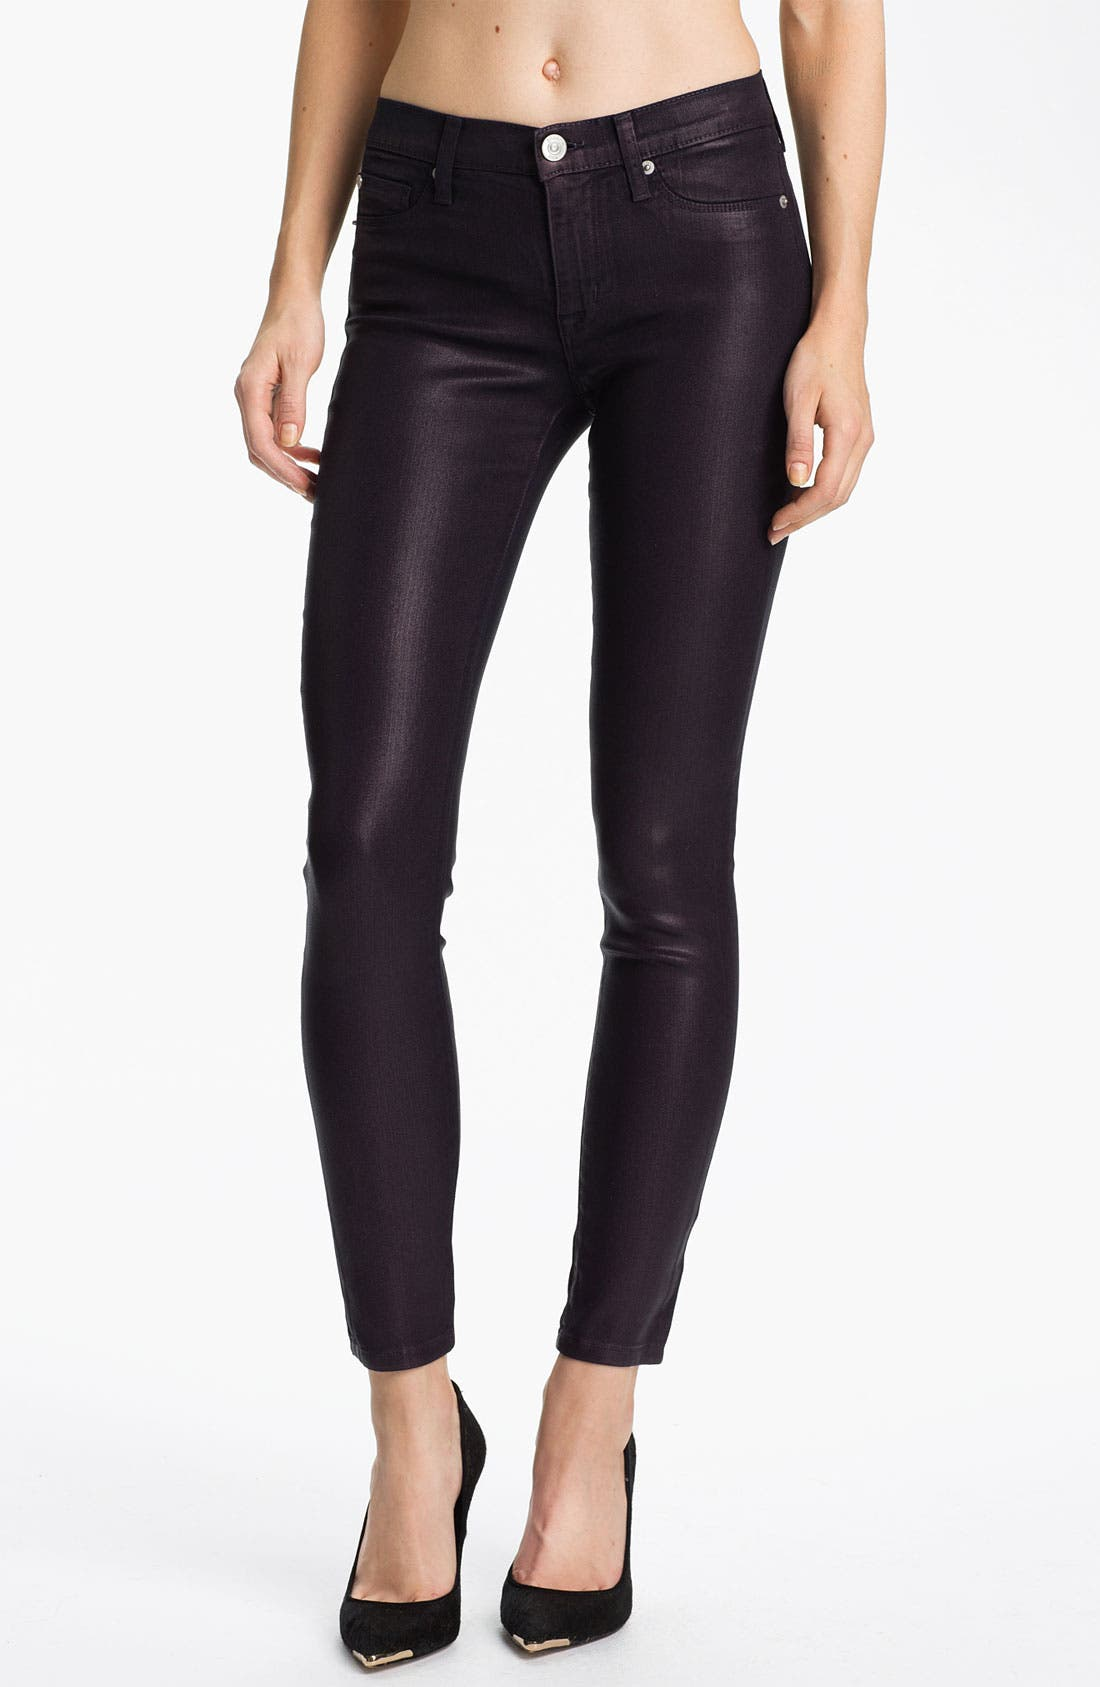 Main Image - Hudson Jeans 'Nico' Mid Rise Skinny Stretch Jeans (Gothic Lotita)